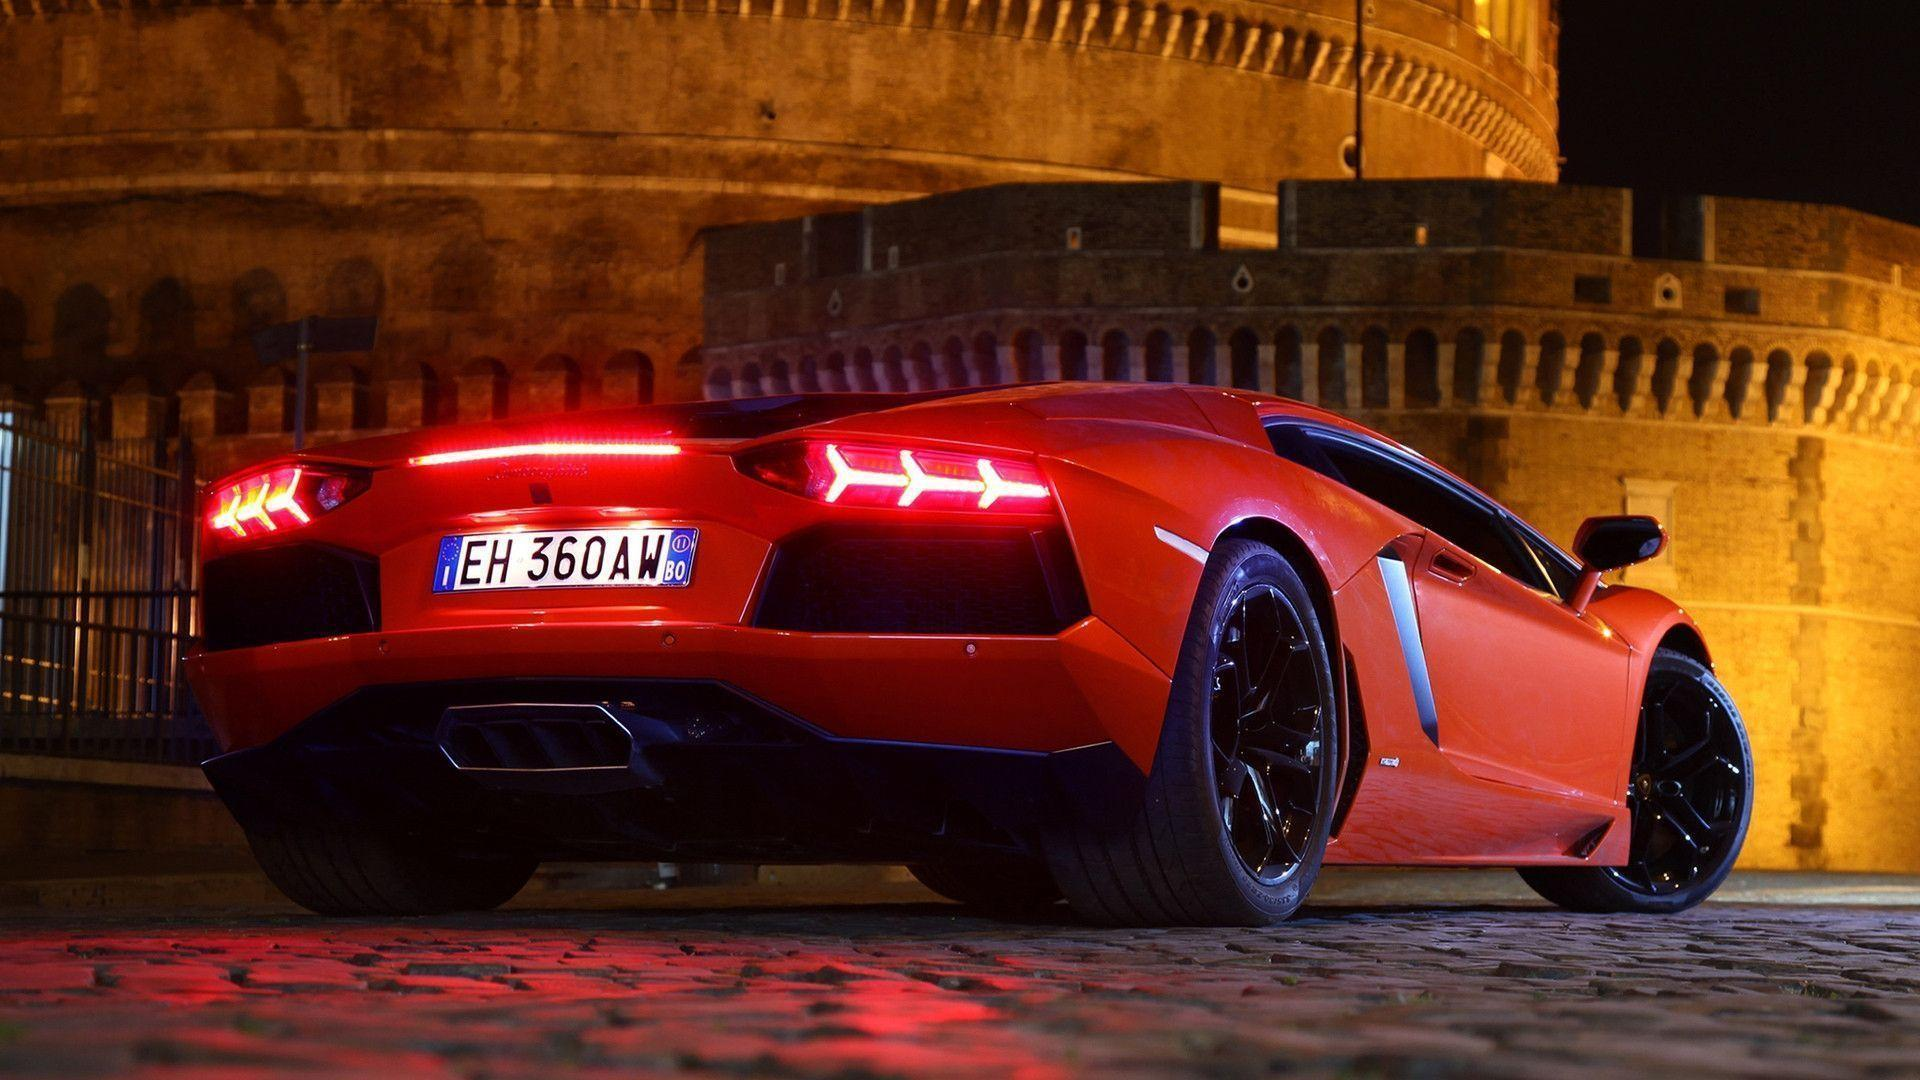 Lamborghini Aventador Wallpaper 1920x1080 >> Lamborghini Wallpapers 1920x1080 Wallpaper Cave